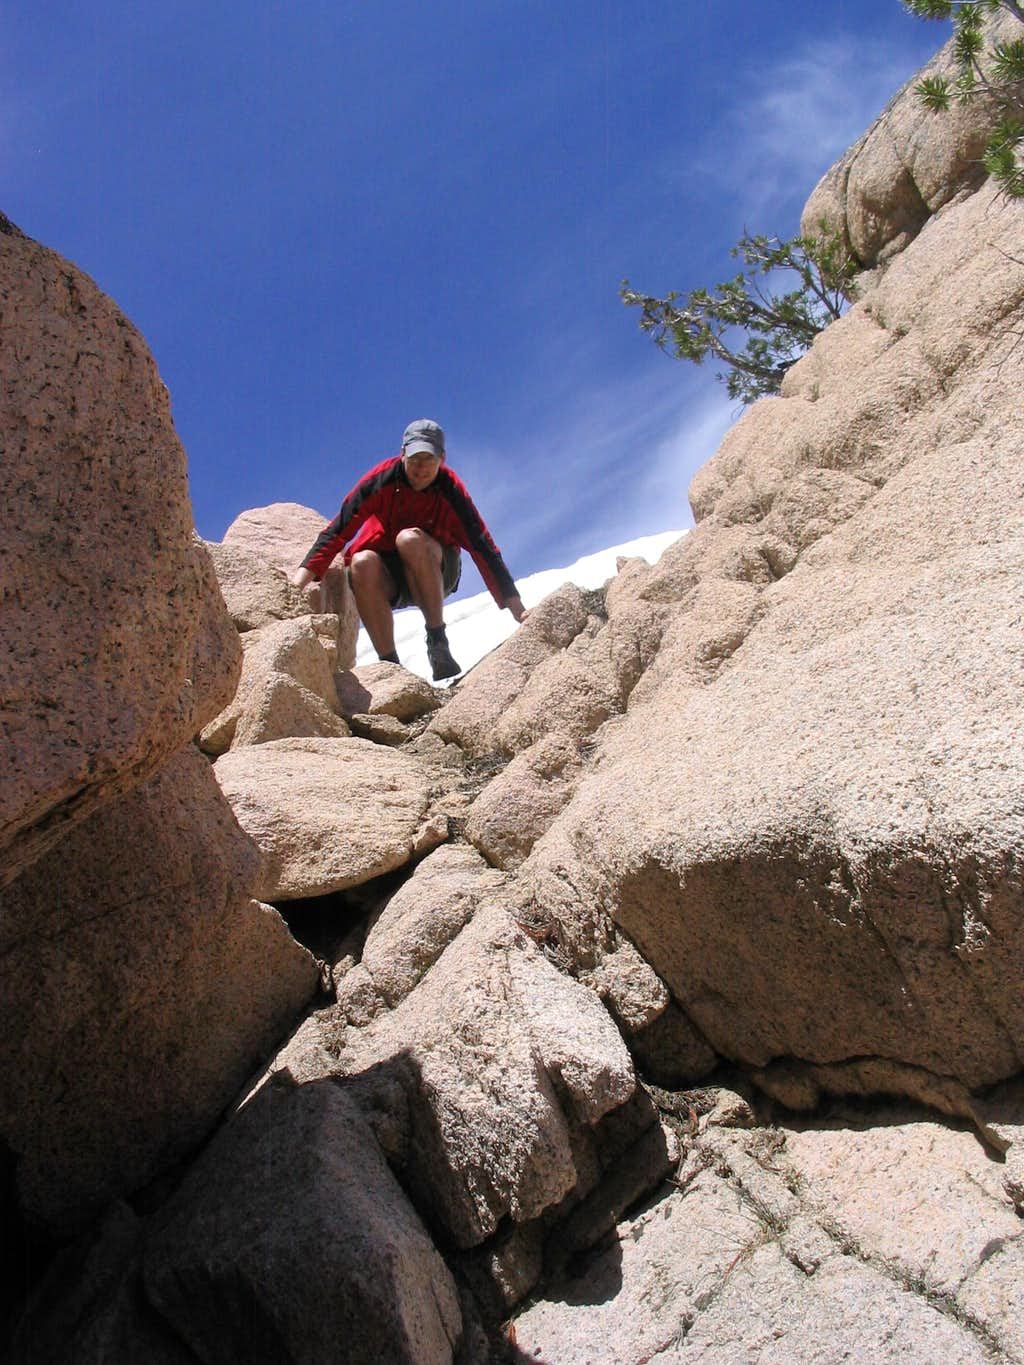 Coming off the Summit